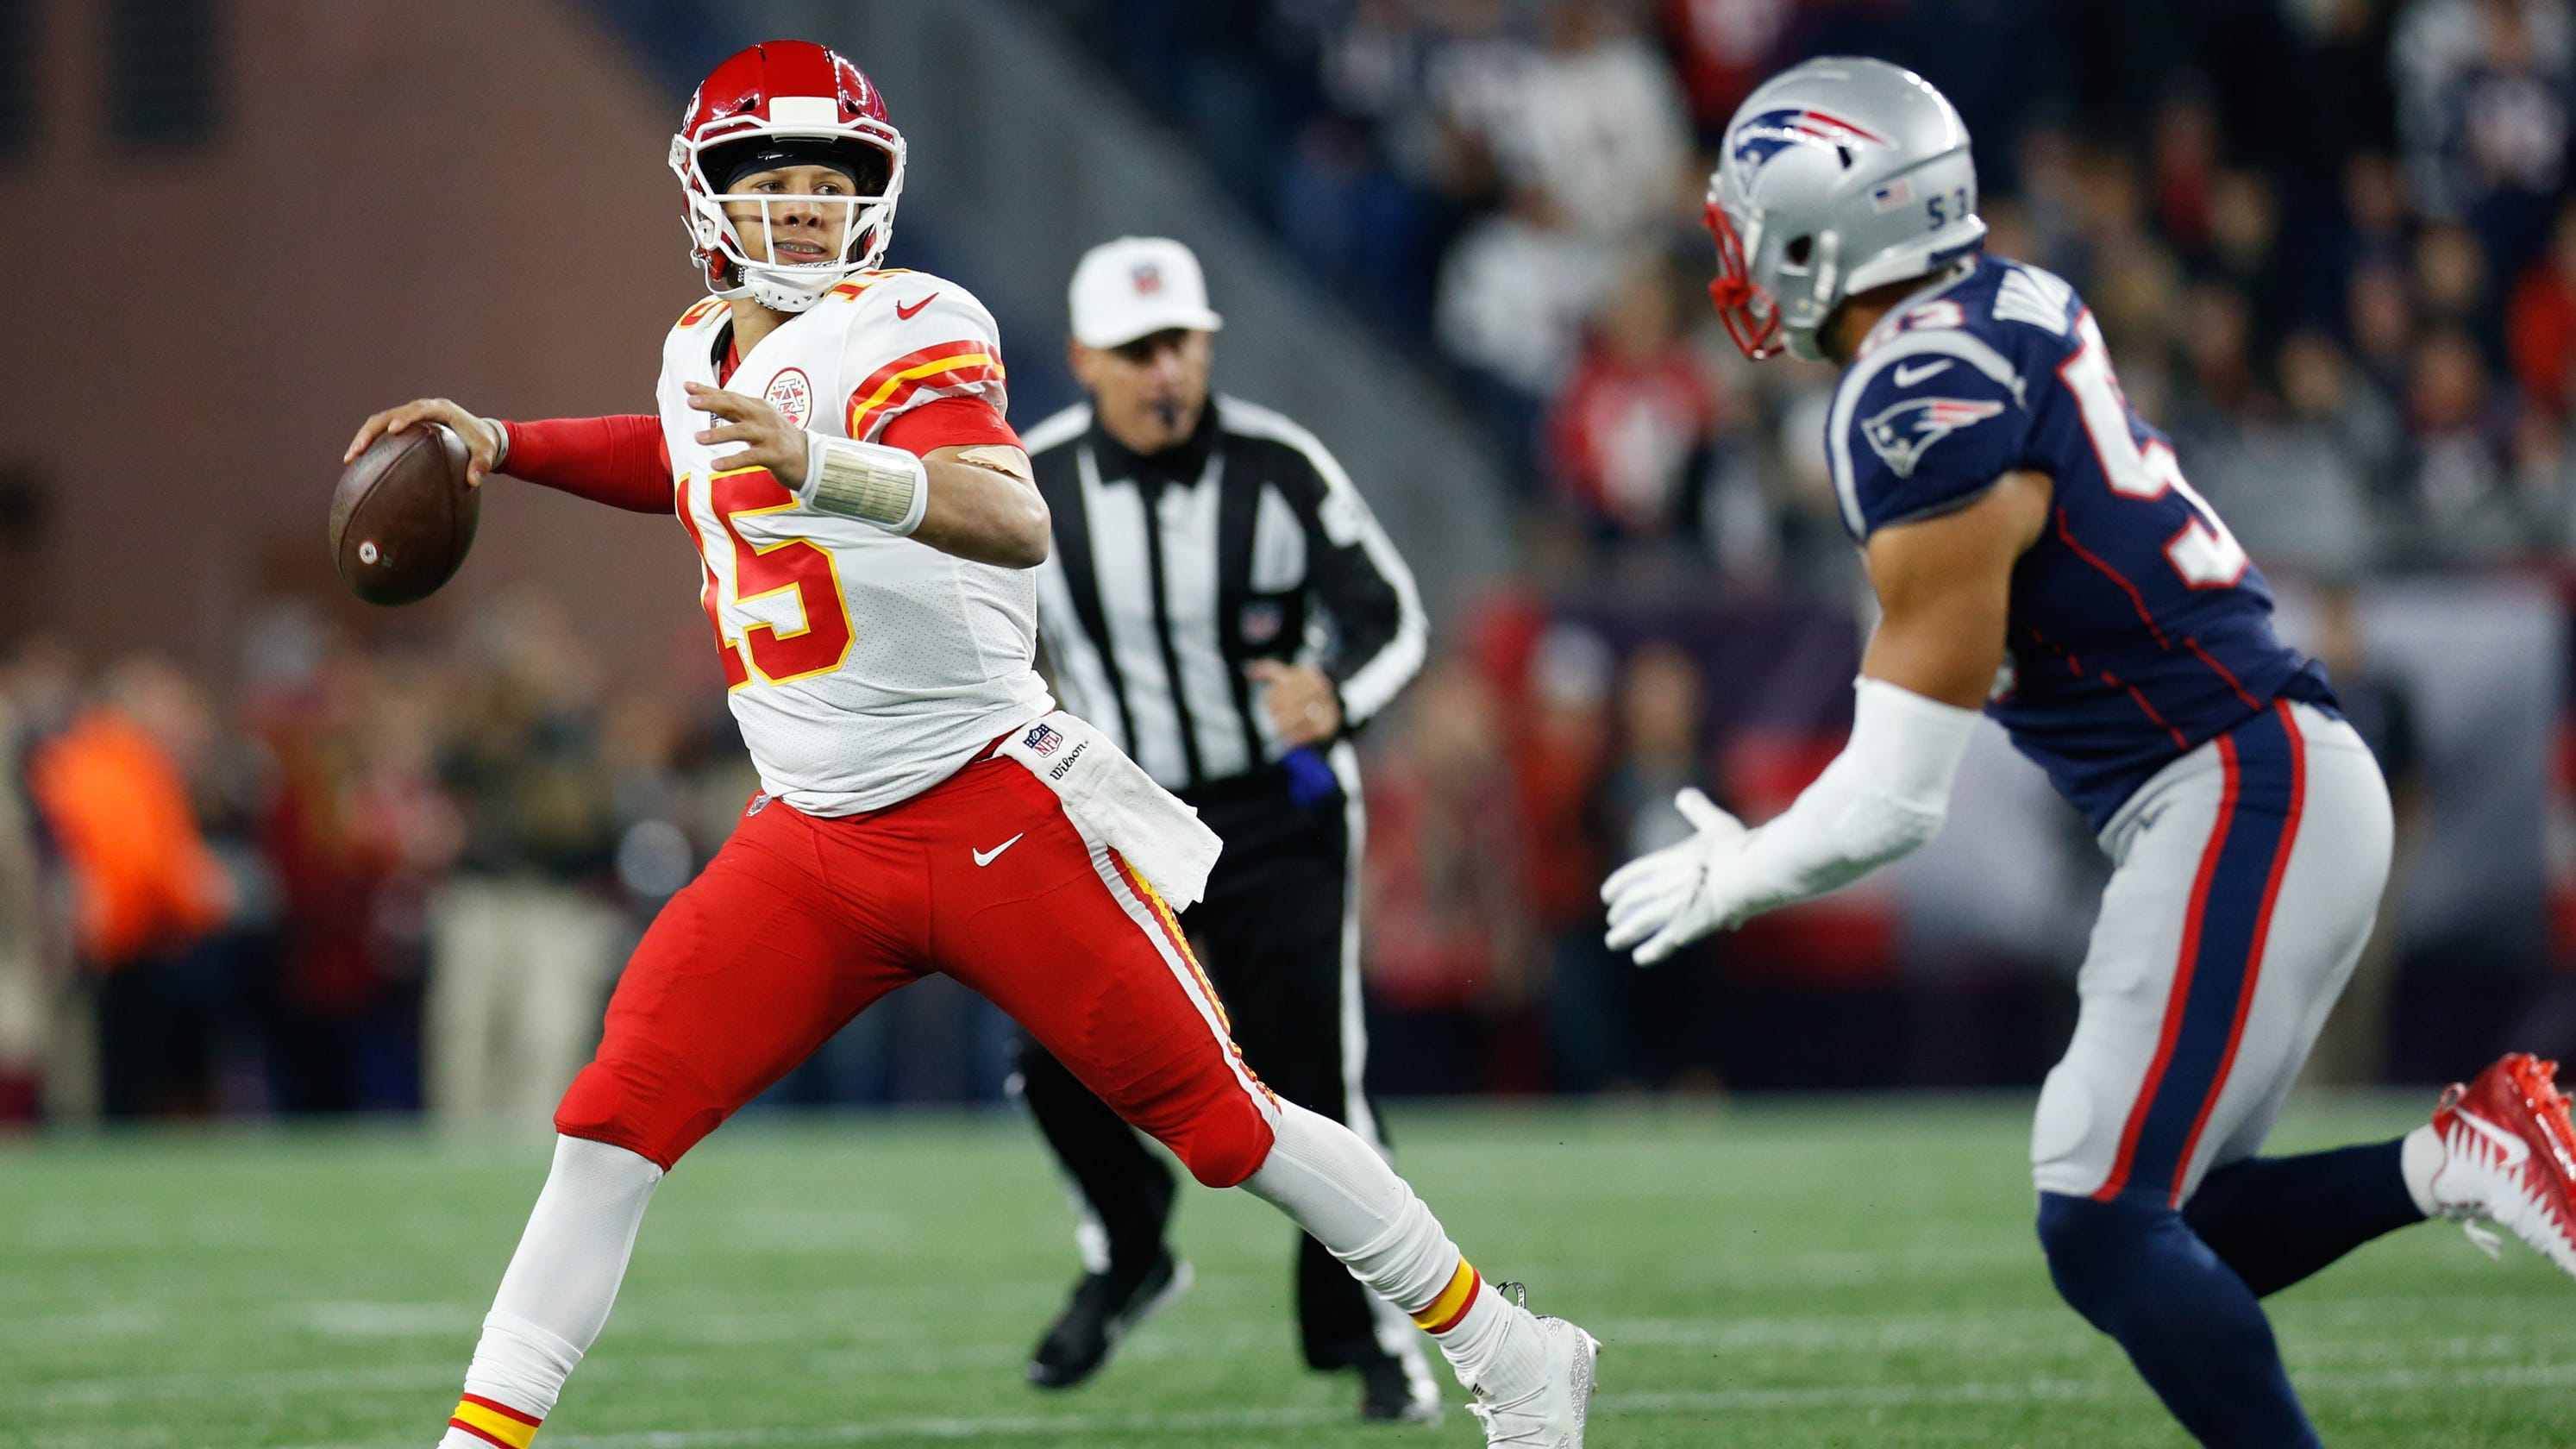 a378877f3e2 Patriots at Chiefs AFC Championship Game preview  Can Patrick Mahomes  outduel Tom Brady in rematch